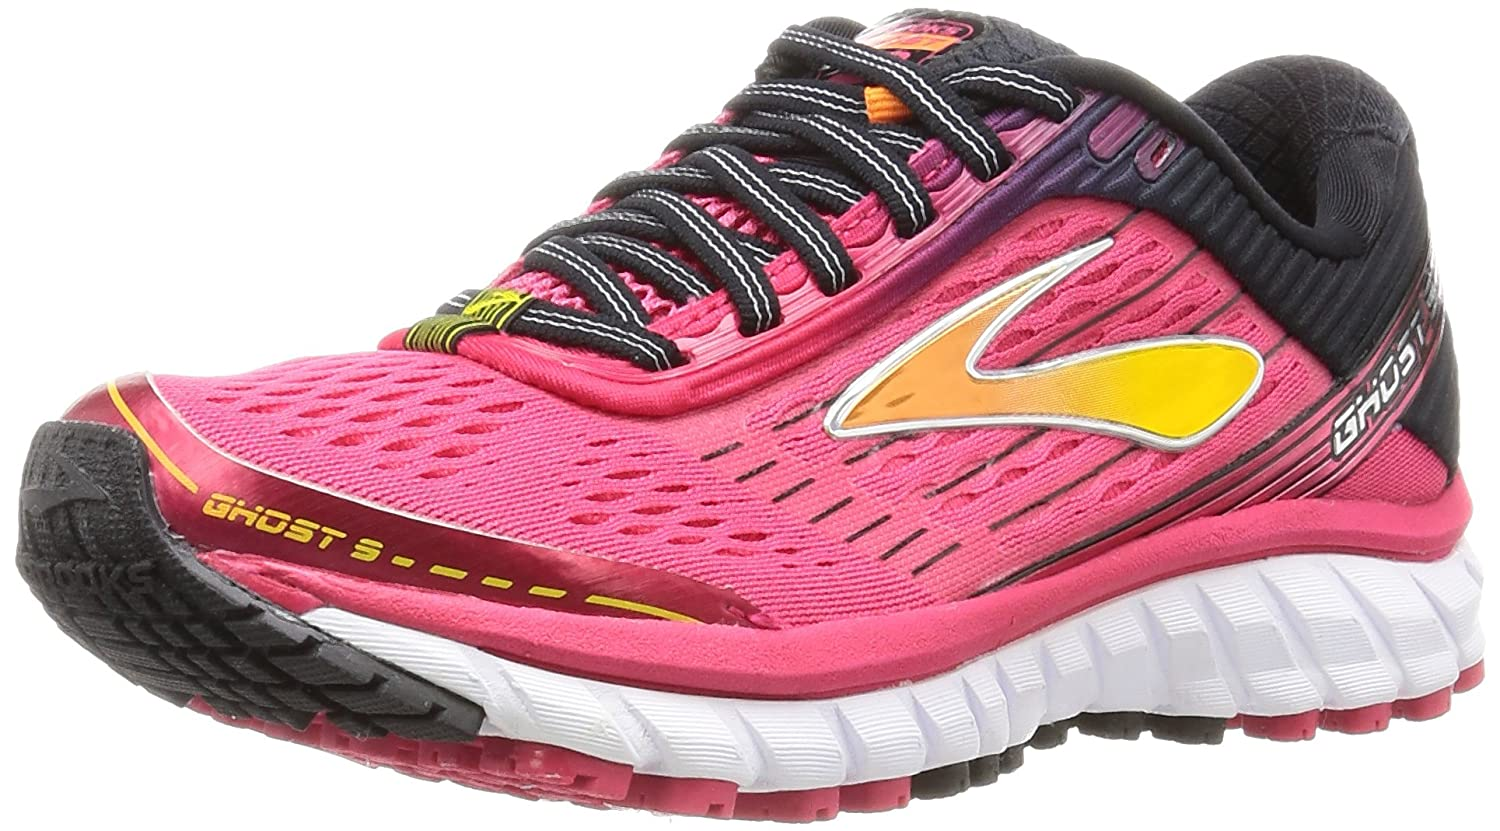 18e66a381624b Amazon.com  Brooks Women s Ghost 9 Running Shoes  Electronics